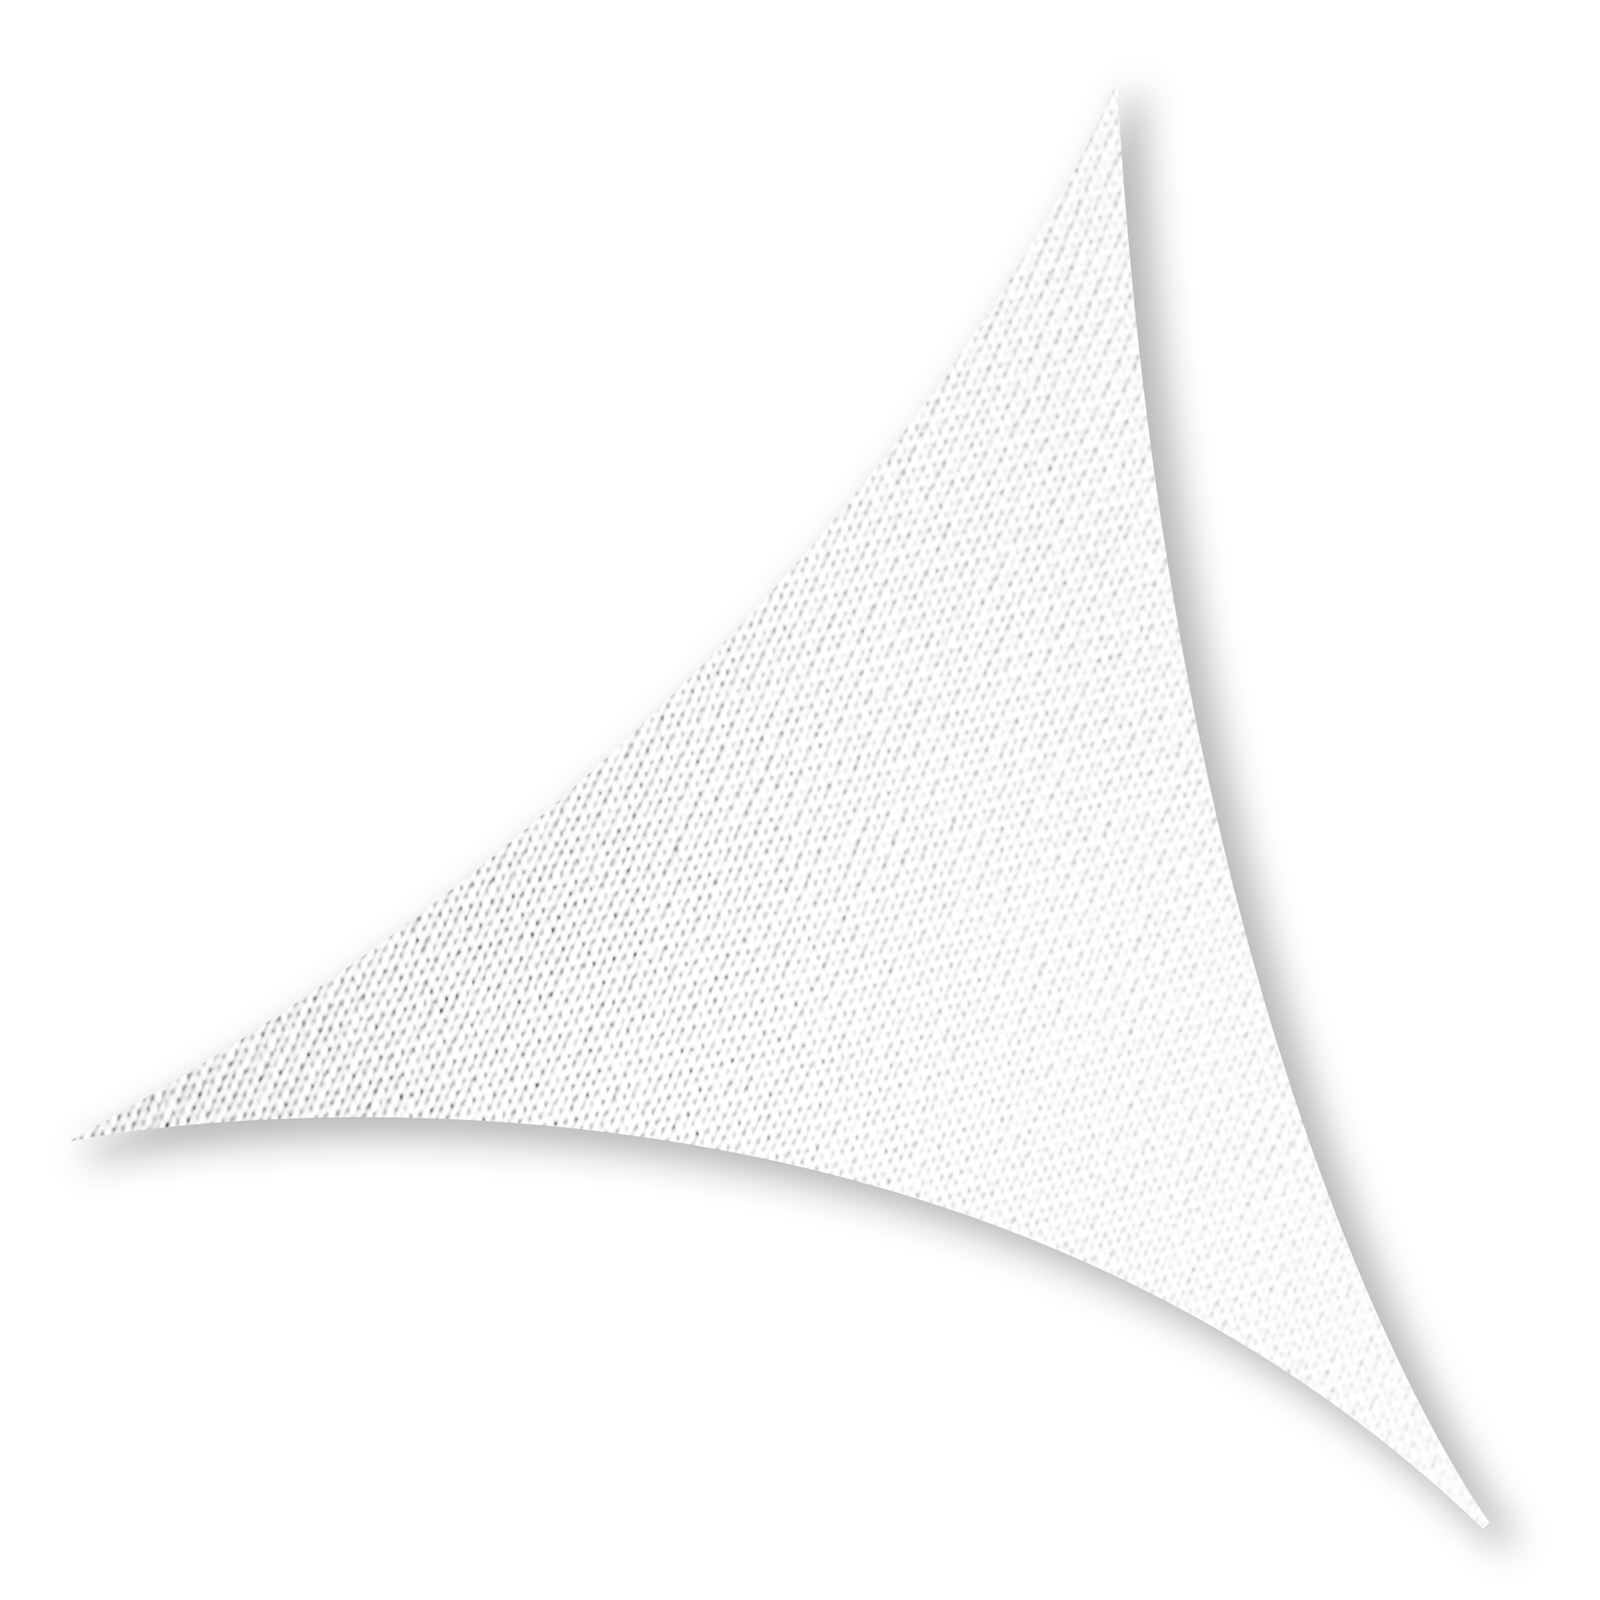 TRIANGLE L 5,00 x 5,00m Sun Shade Sail Bianco